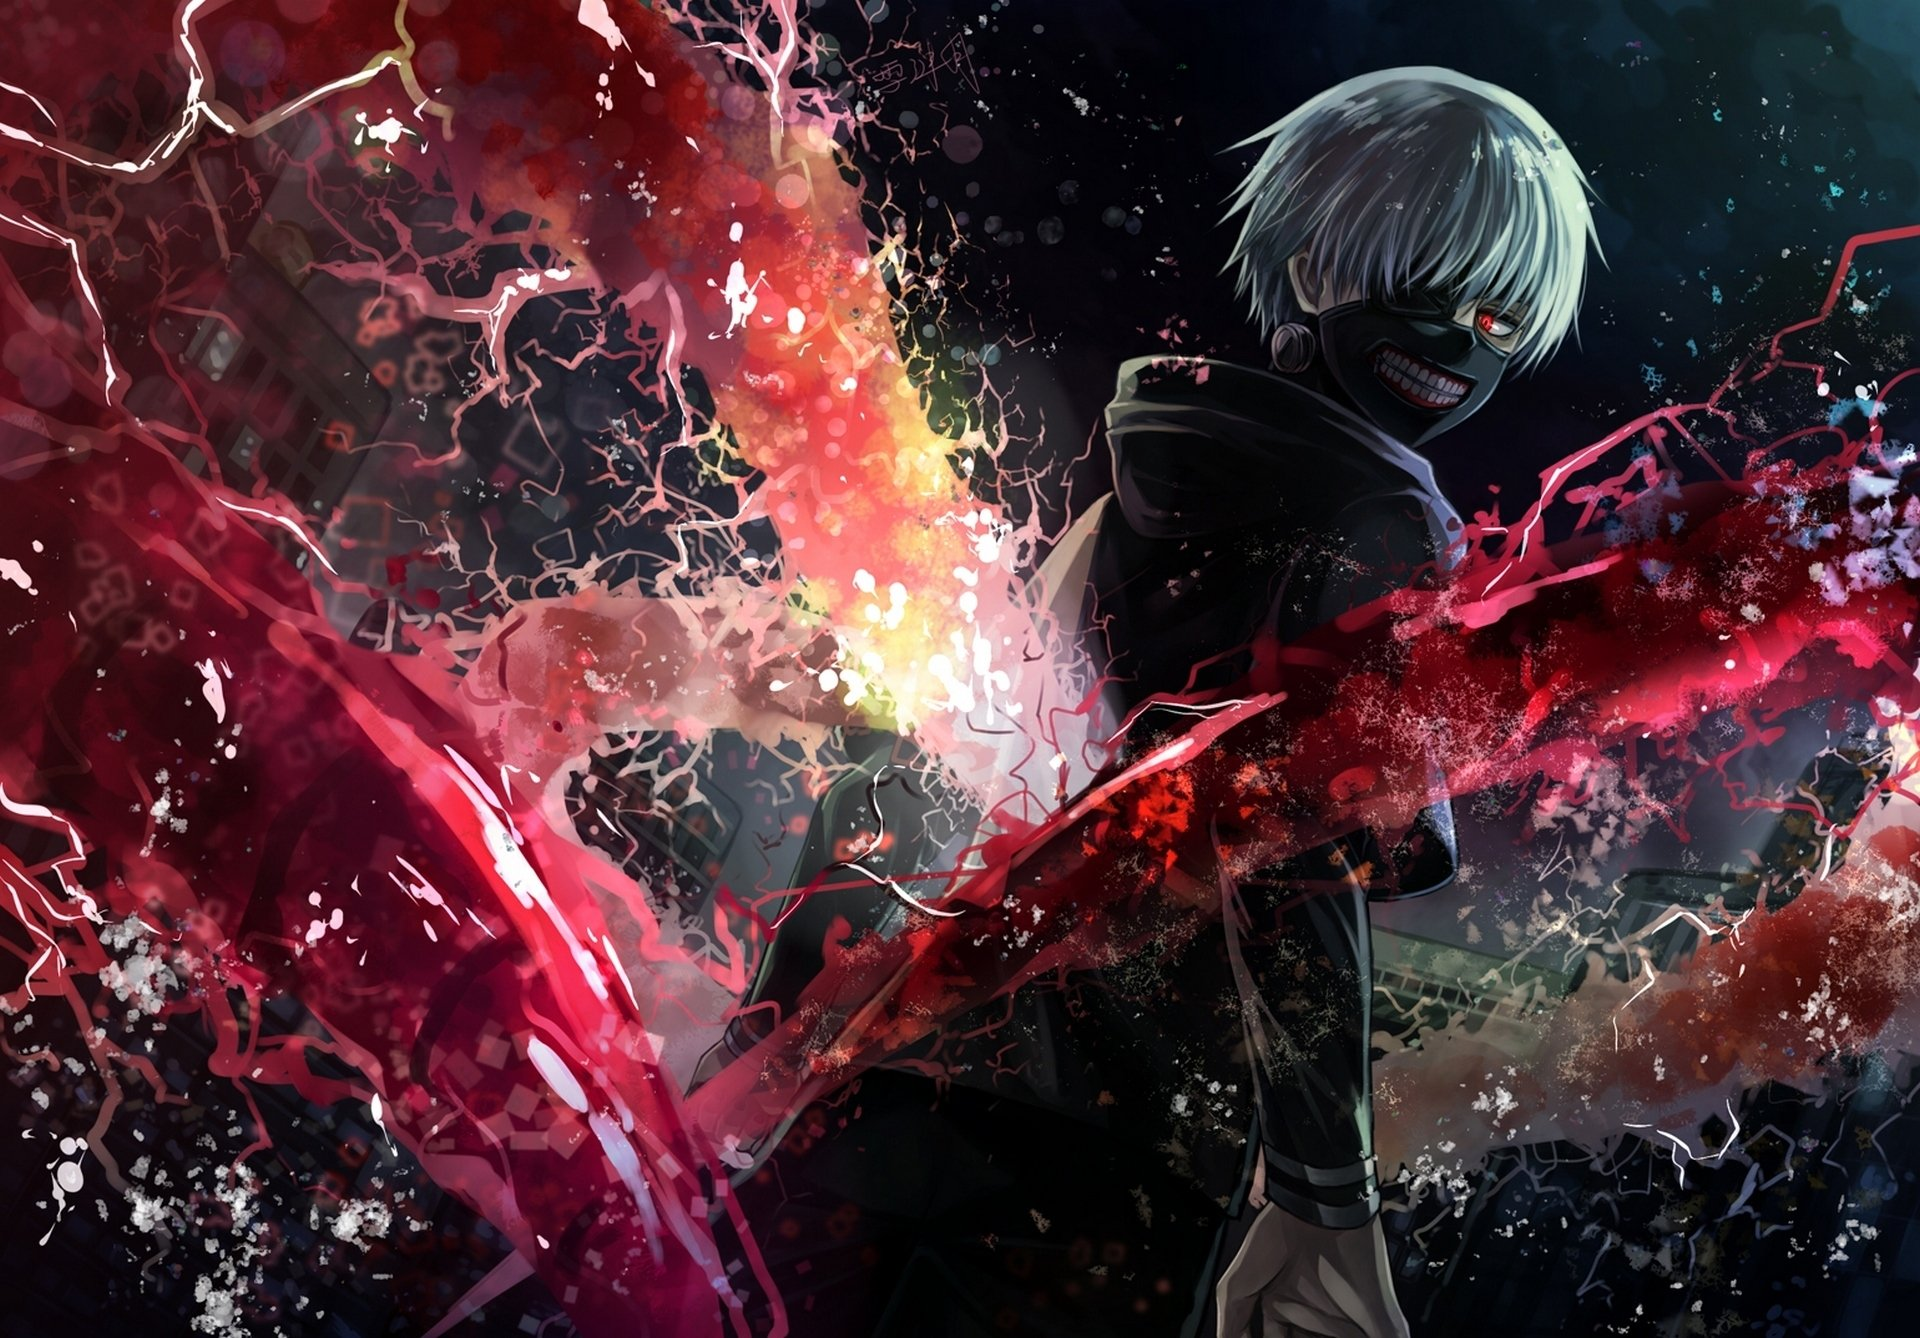 hd wallpaper background id587597 1920x1338 anime tokyo ghoul